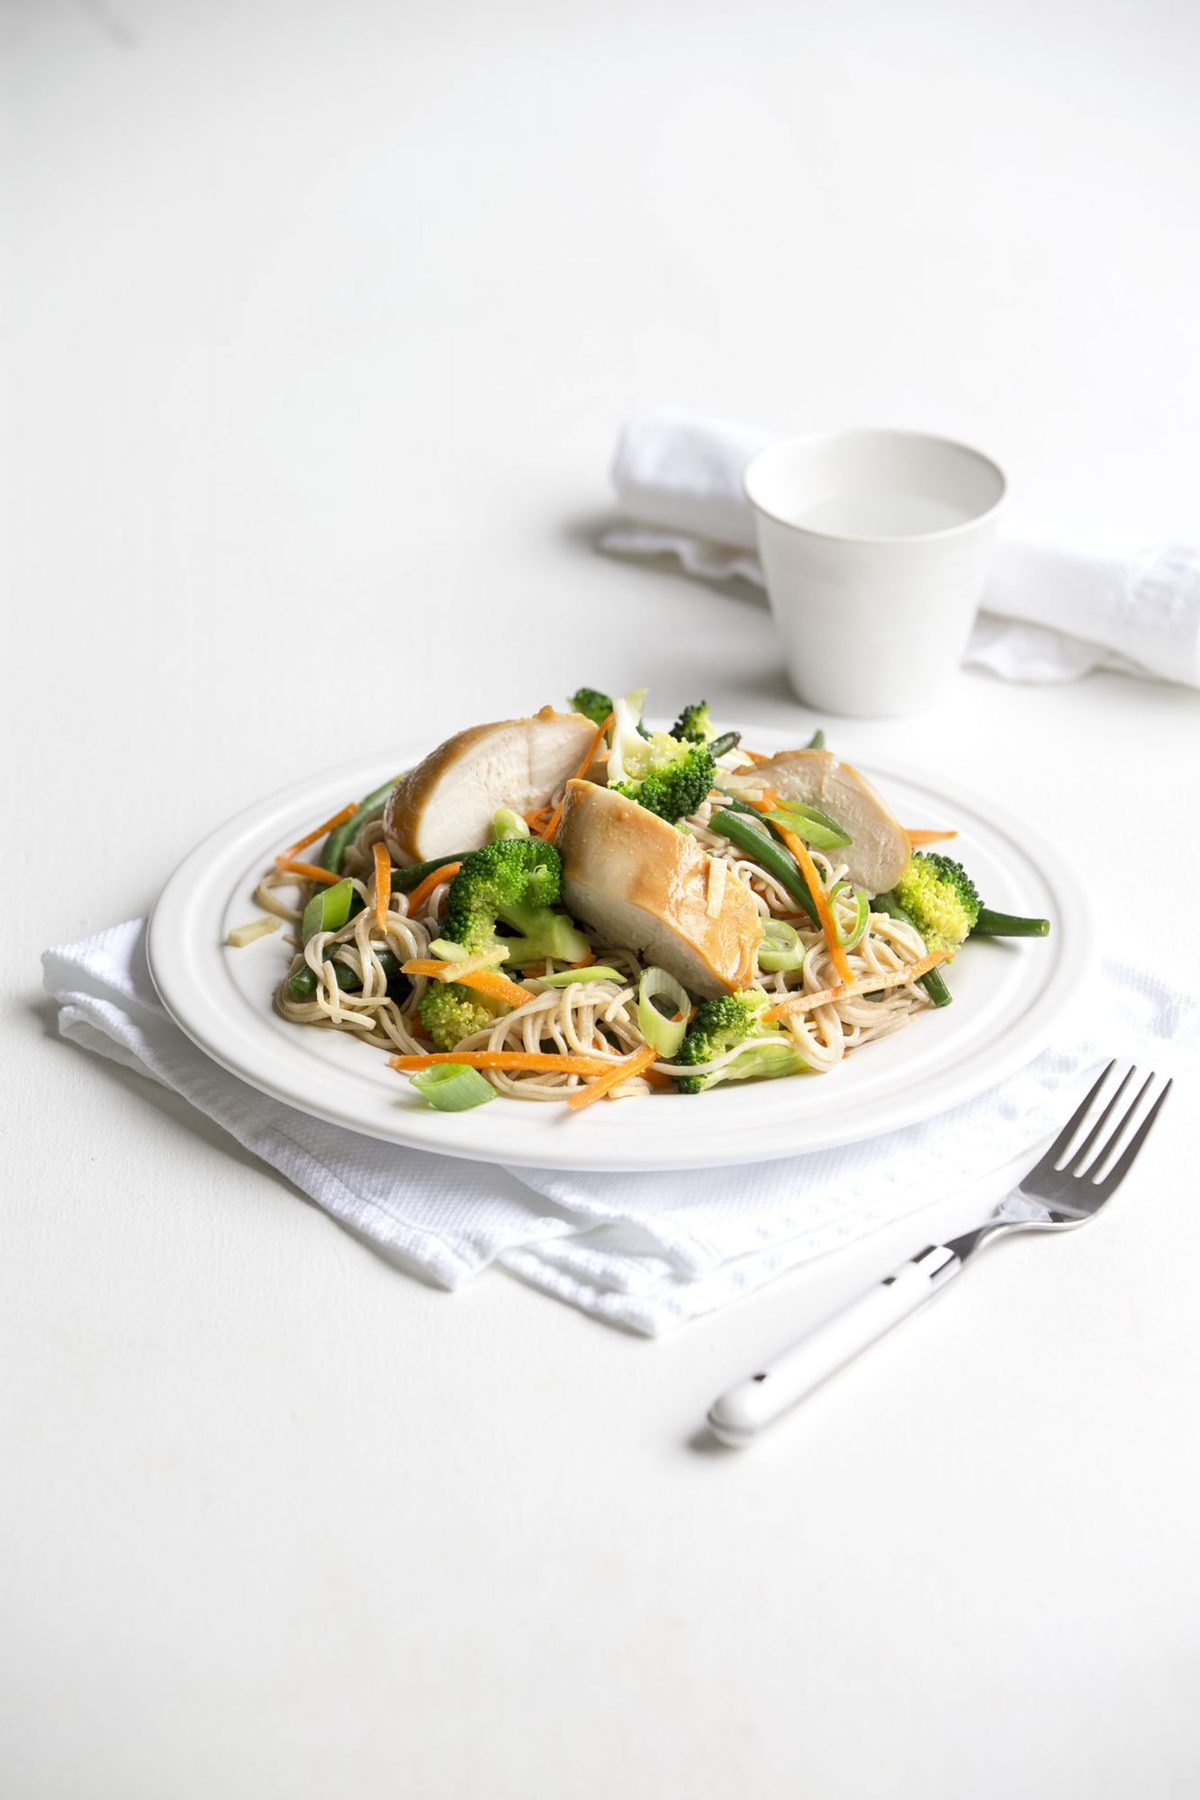 Miso chicken and soba noodle salad